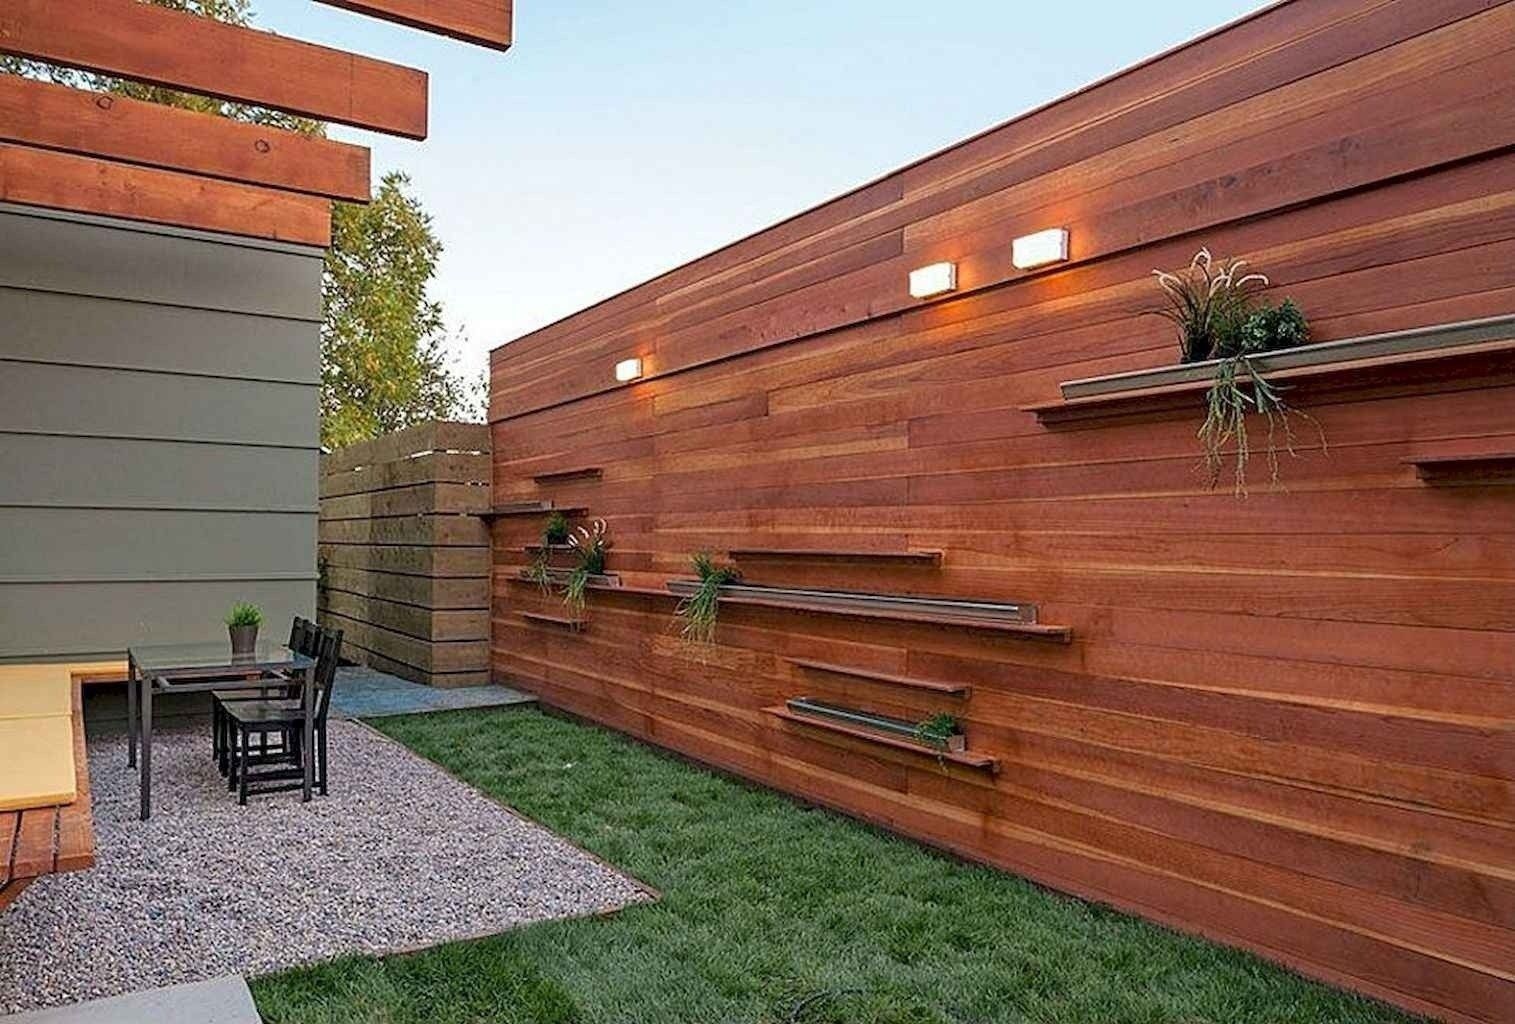 70 Gorgeous Backyard Privacy Fence Decor Ideas On A Budget Backyard Budget Decor Fence Modern Fence Design House Fence Design Fence Design